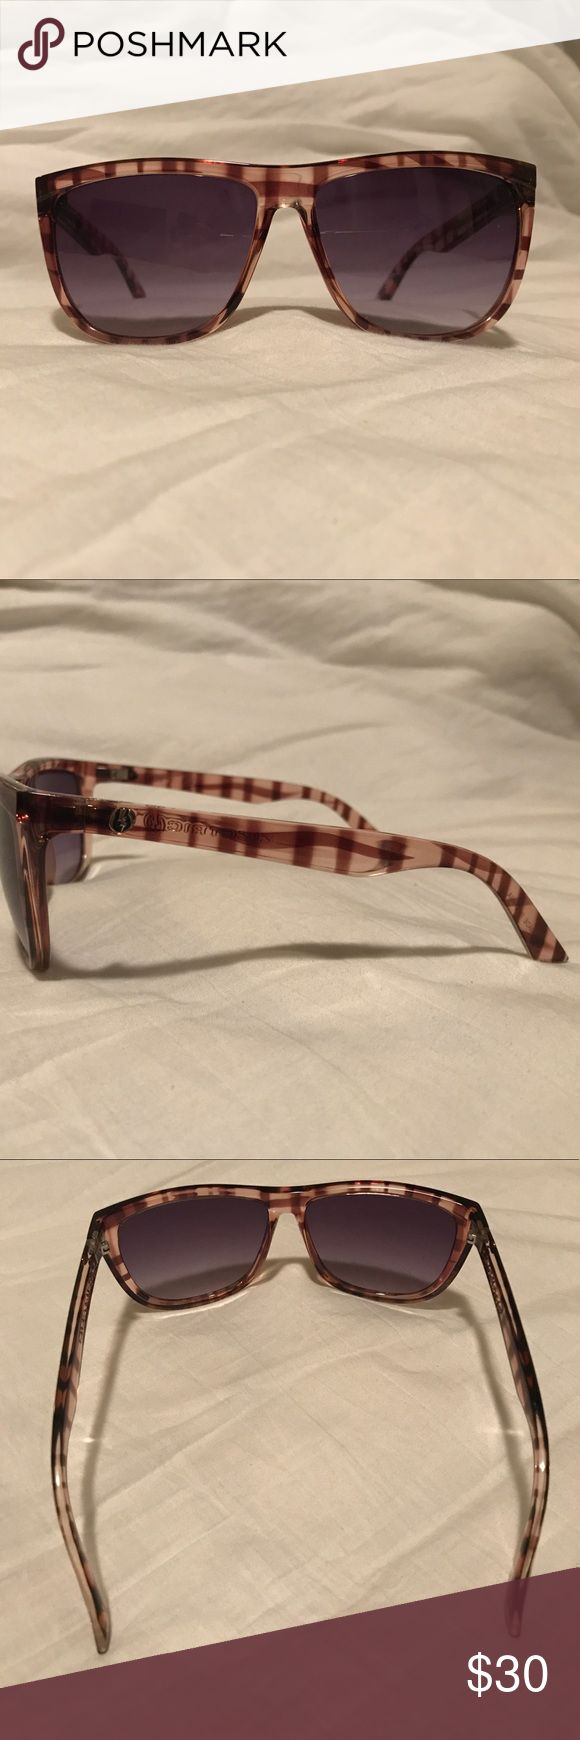 Purple plaid Electric sunglasses Electric sunglasses in a purple plaid pattern. Lenses have no flaws. (They are grey with a purple fade) Electric Accessories Sunglasses